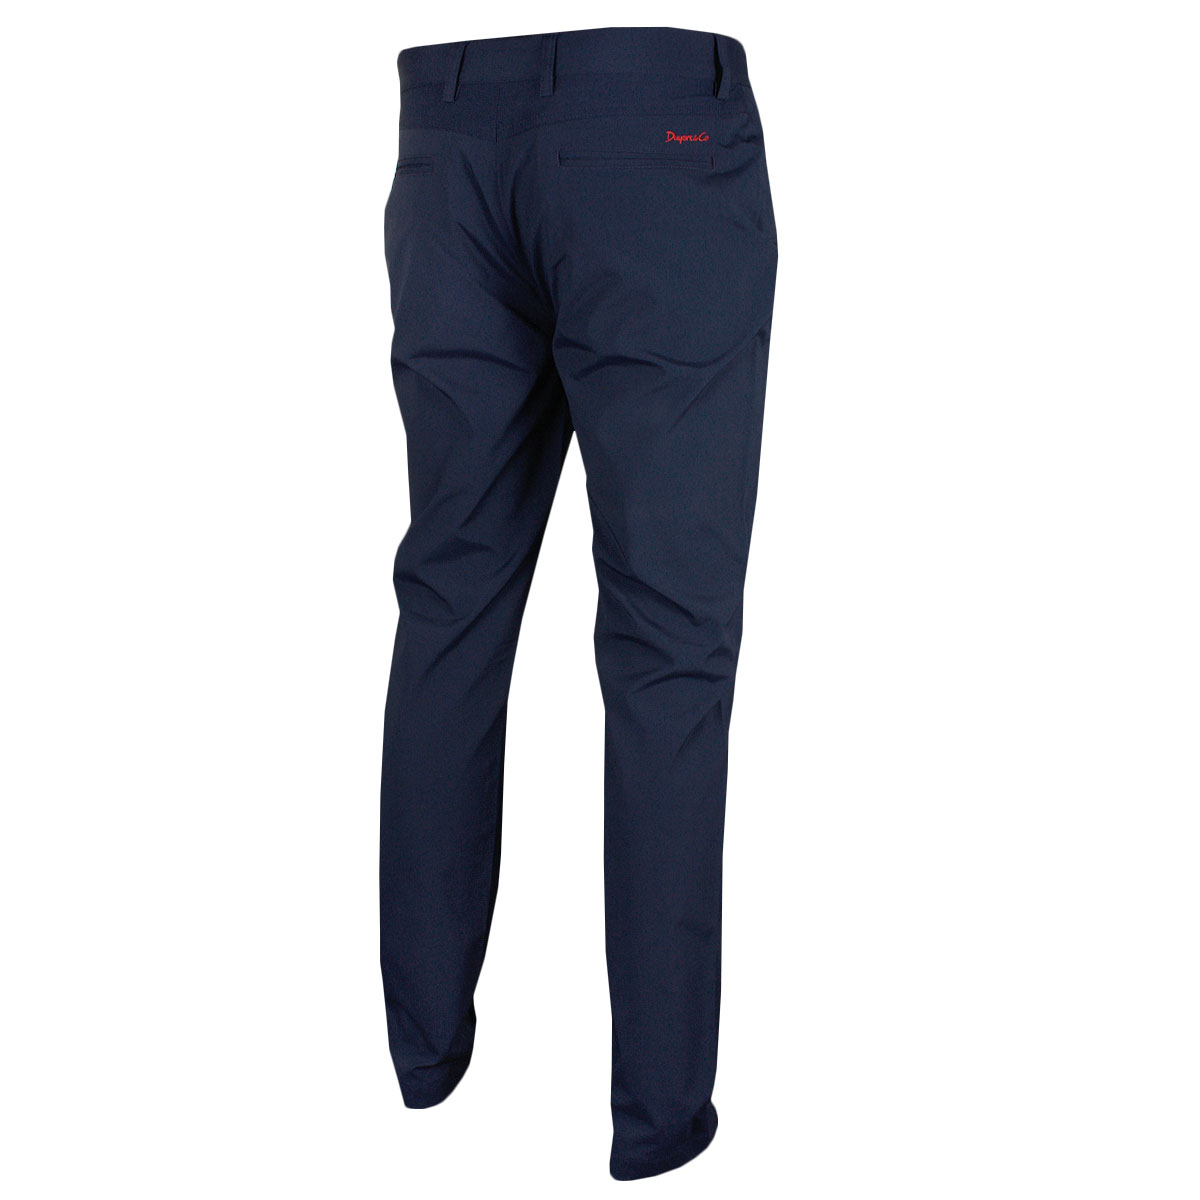 Dwyers-amp-Co-Mens-Micro-Tech-Golf-Technical-Water-Resistant-Trousers-33-OFF-RRP thumbnail 6